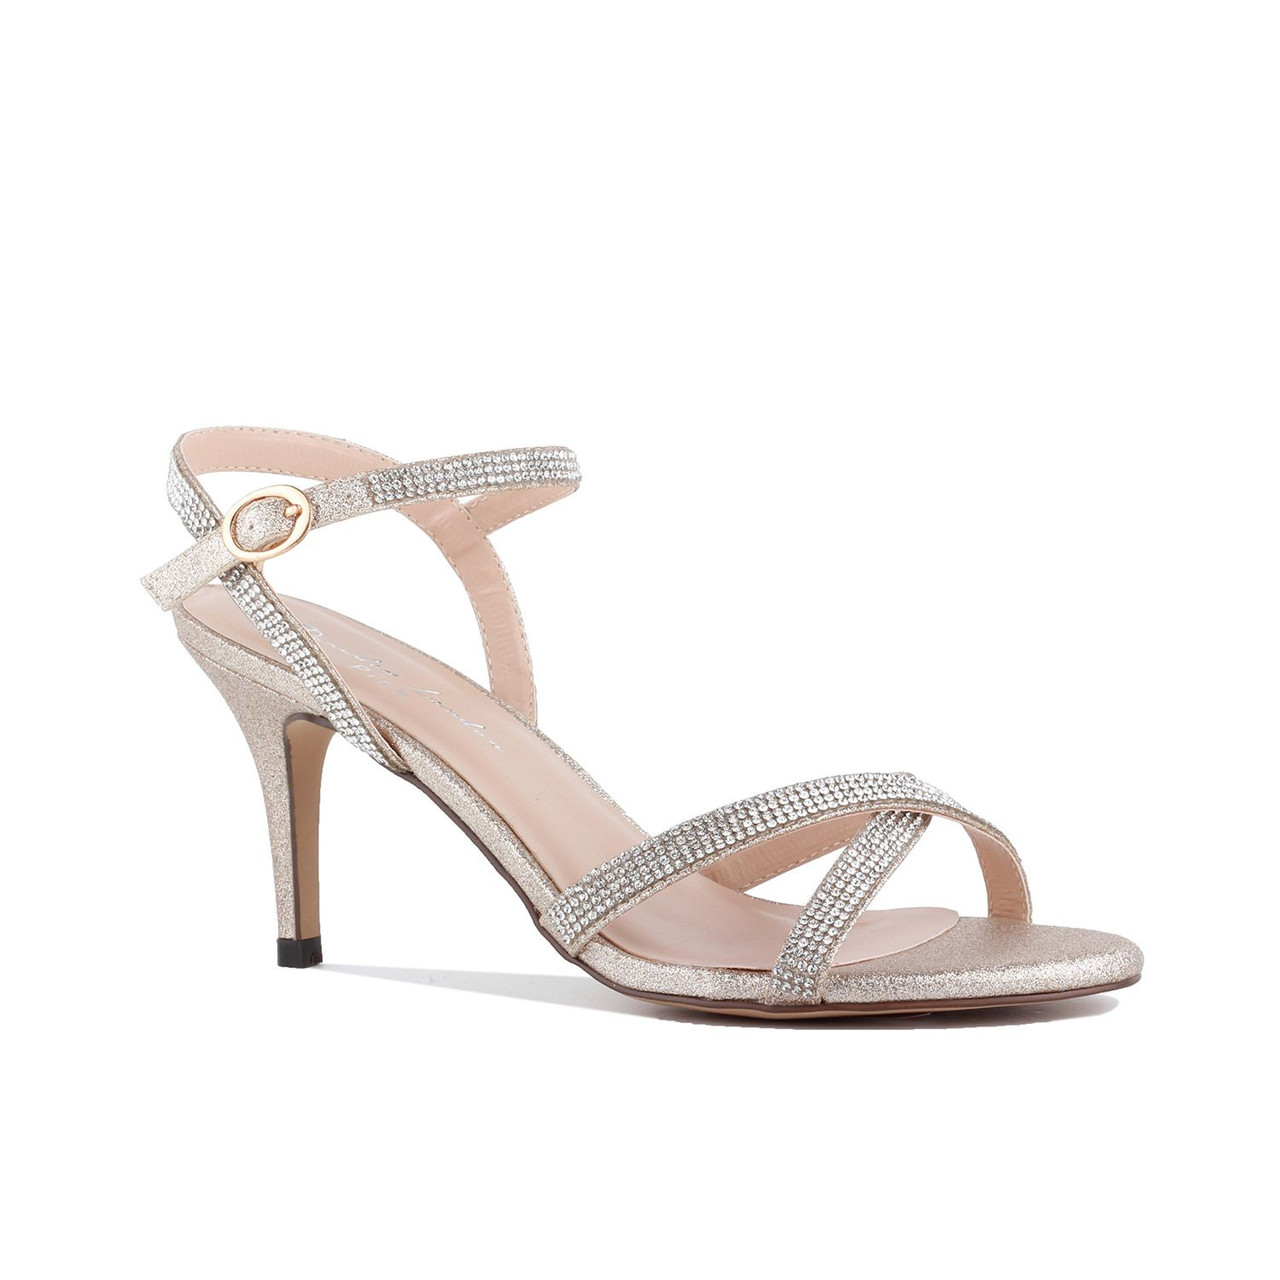 Paradox London Riva Champagne - Pink Collection - Standard Medium Size